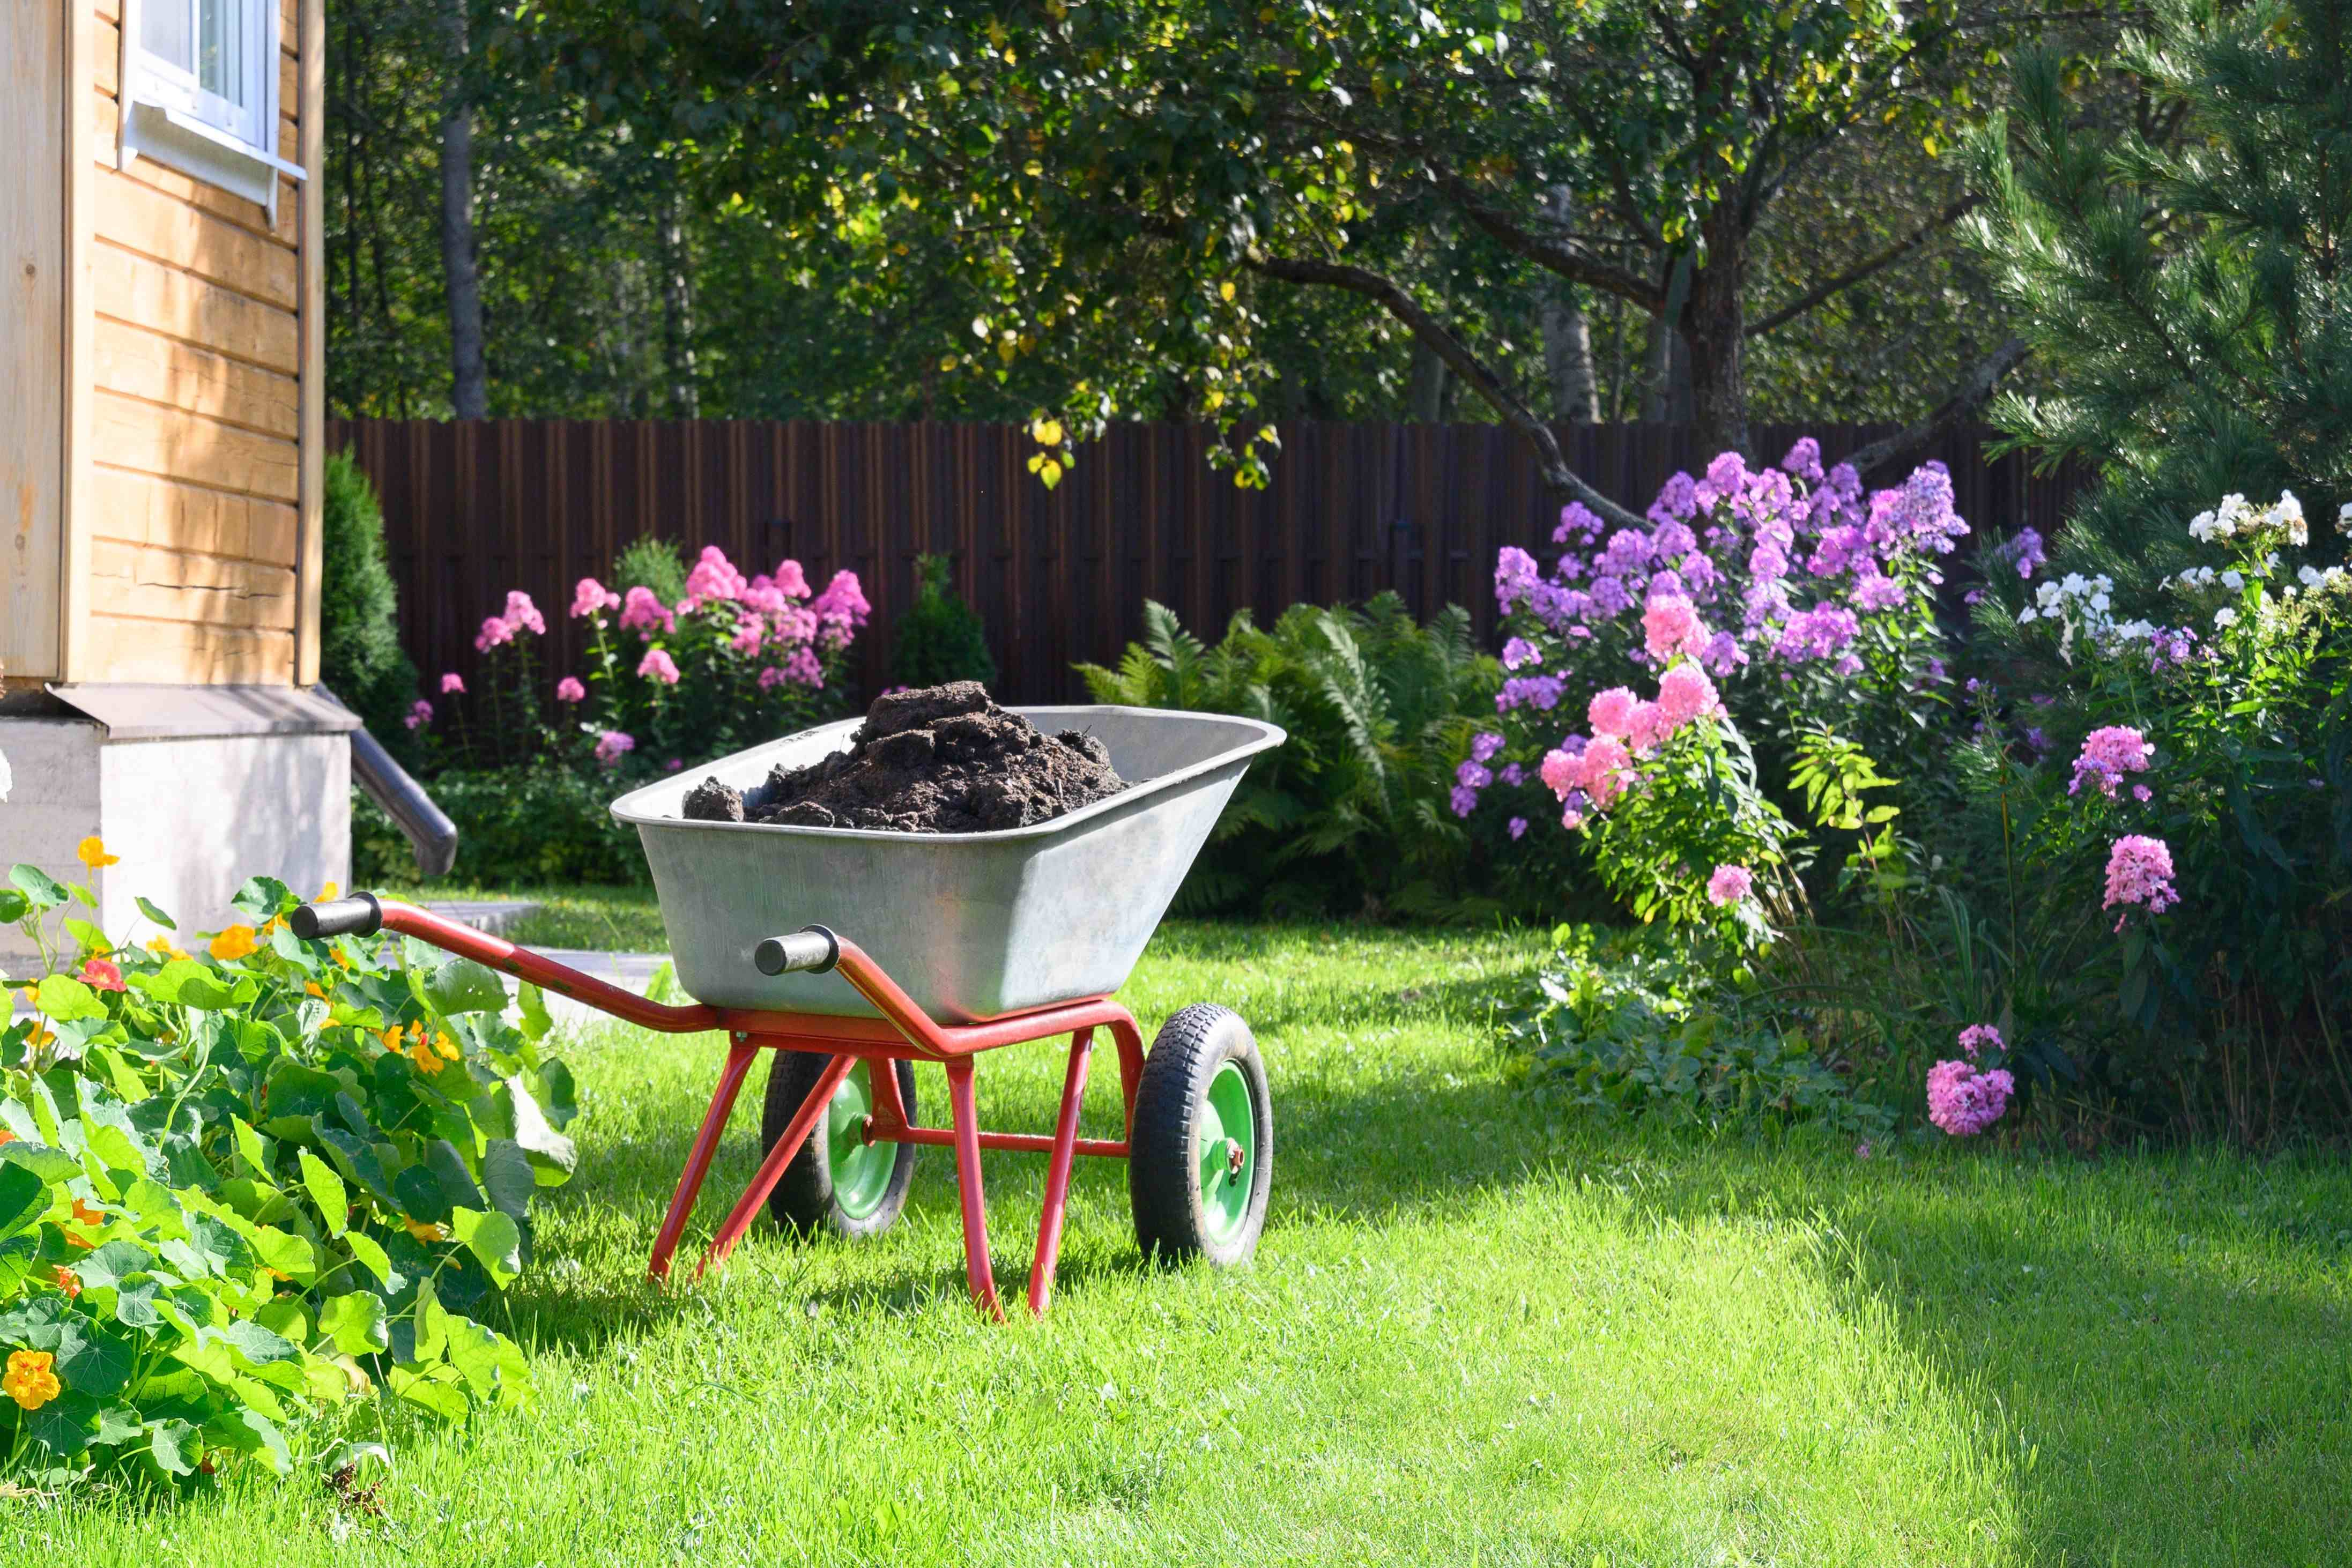 How to care for your vegetable garden in summer